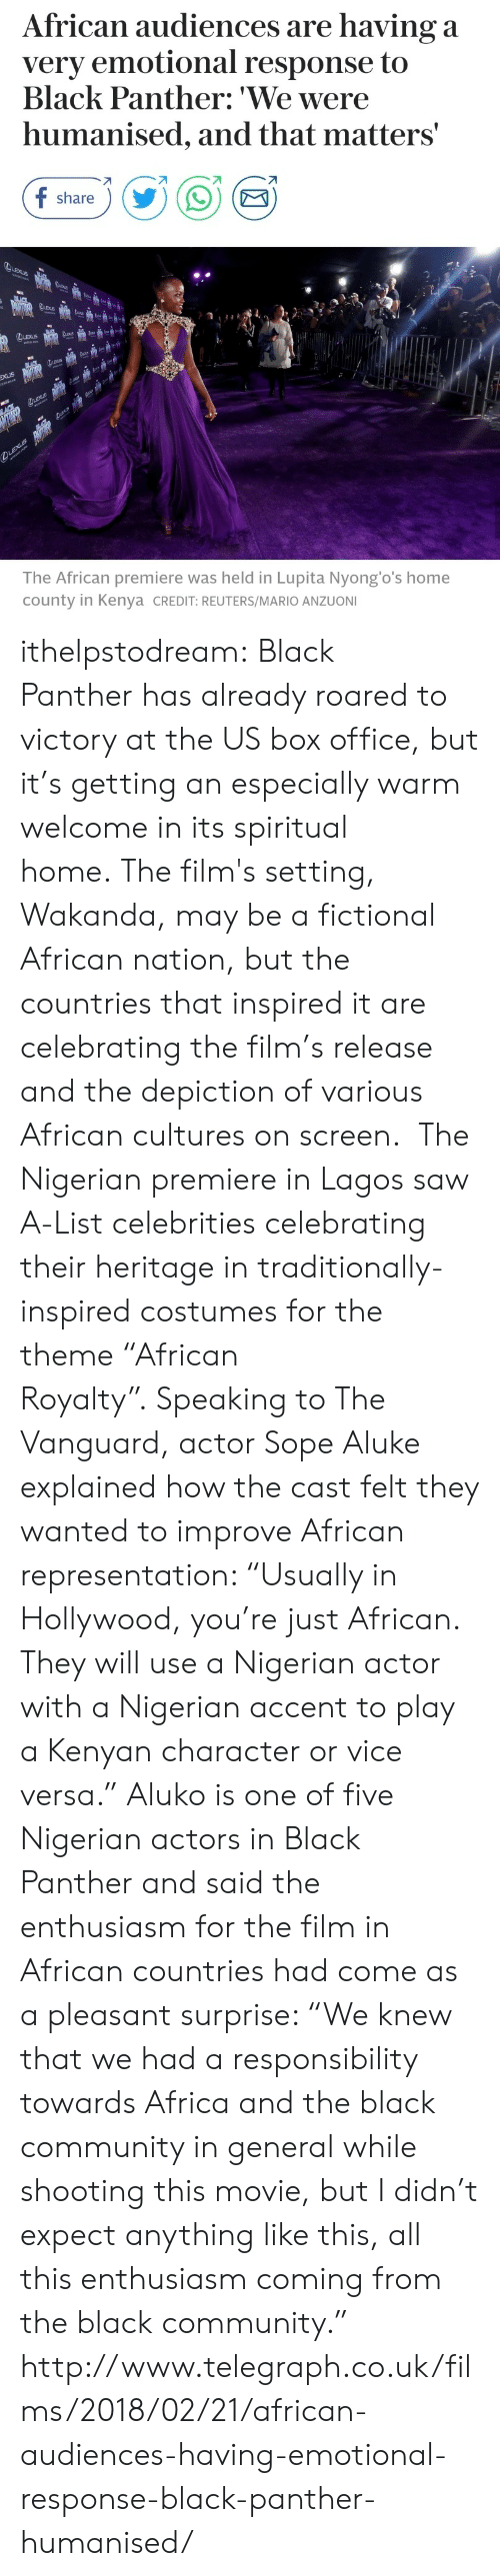 """sope: African audiences are having a  very emotional response to  Black Panther: 'We were  humanised, and that matters'  share  The African premiere was held in Lupita Nyong'o's home  county in Kenya CREDIT: REUTERS/MARIO ANZUONI ithelpstodream:  Black Pantherhas already roared to victory at the US box office, but it's getting an especially warm welcome in its spiritual home.Thefilm'ssetting, Wakanda, may be a fictional African nation, but the countries that inspired it are celebrating the film's release and the depiction of various African cultures on screen.  The Nigerian premiere in Lagos saw A-List celebrities celebrating their heritagein traditionally-inspired costumes for the theme """"African Royalty"""".Speaking toThe Vanguard, actor Sope Aluke explained how the cast felt they wanted to improve African representation: """"Usually in Hollywood, you're just African. They will use a Nigerian actor with a Nigerian accent to play a Kenyan character or vice versa.""""  Aluko is one of five Nigerian actors in Black Panther and said the enthusiasm for the film in African countries had come as a pleasant surprise: """"We knew that we had a responsibility towards Africa and the black community in general while shooting this movie, but I didn't expect anything like this, all this enthusiasm coming from the black community.""""  http://www.telegraph.co.uk/films/2018/02/21/african-audiences-having-emotional-response-black-panther-humanised/"""